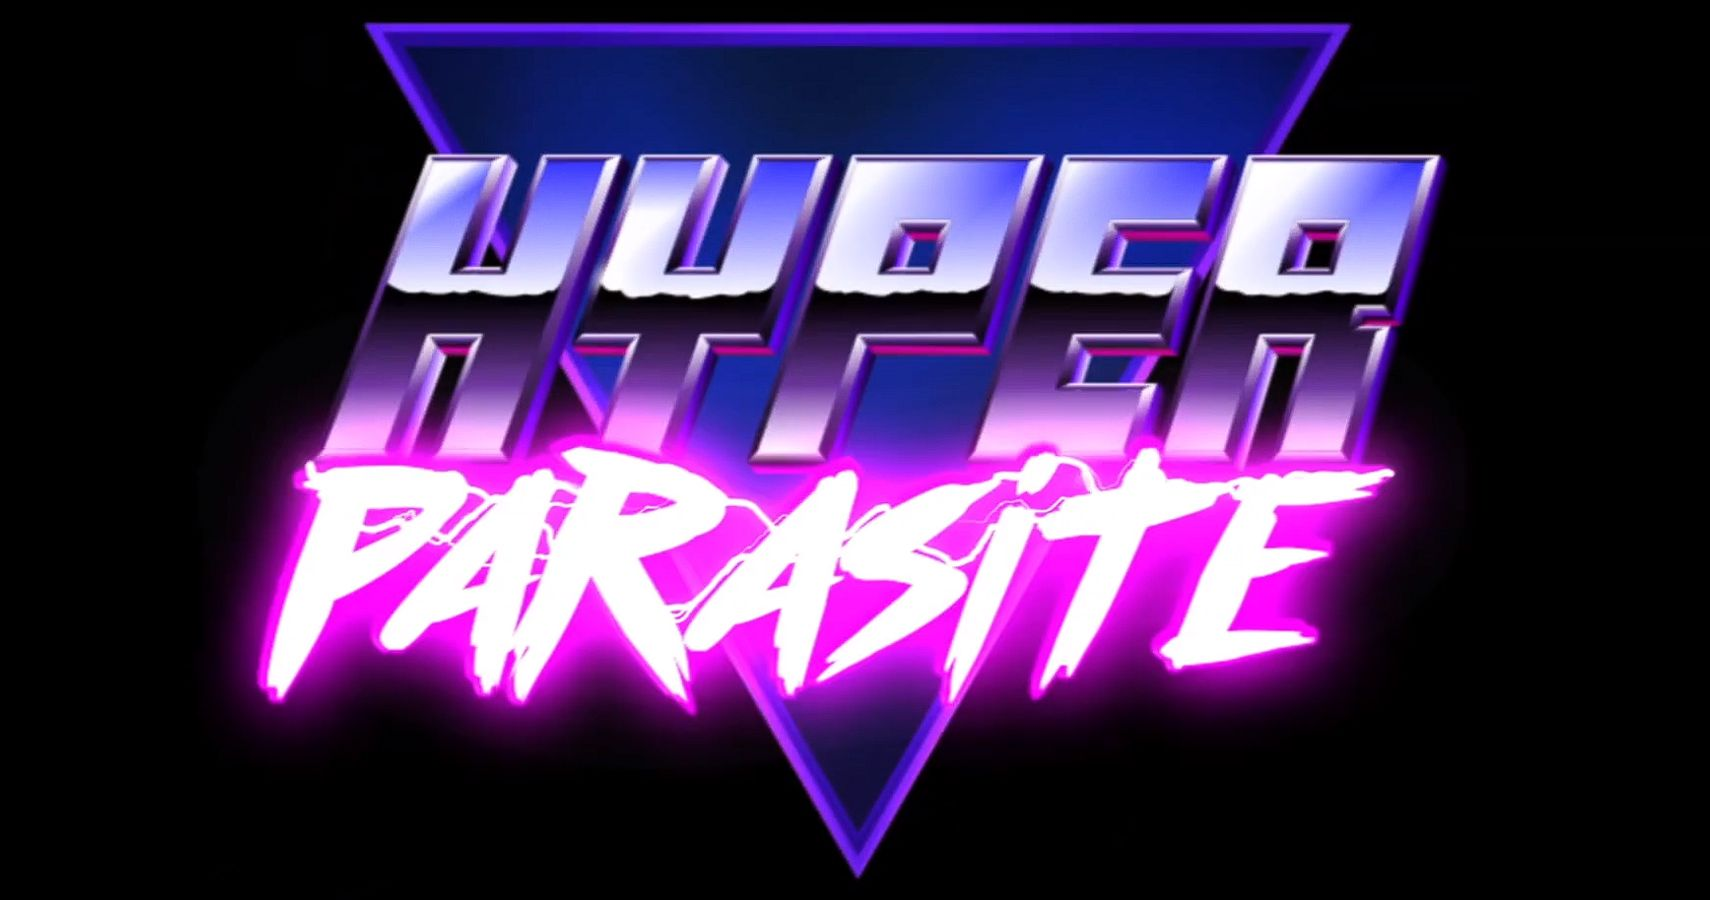 HyperParasite Is Like Enter The Gungeon But With More '80s